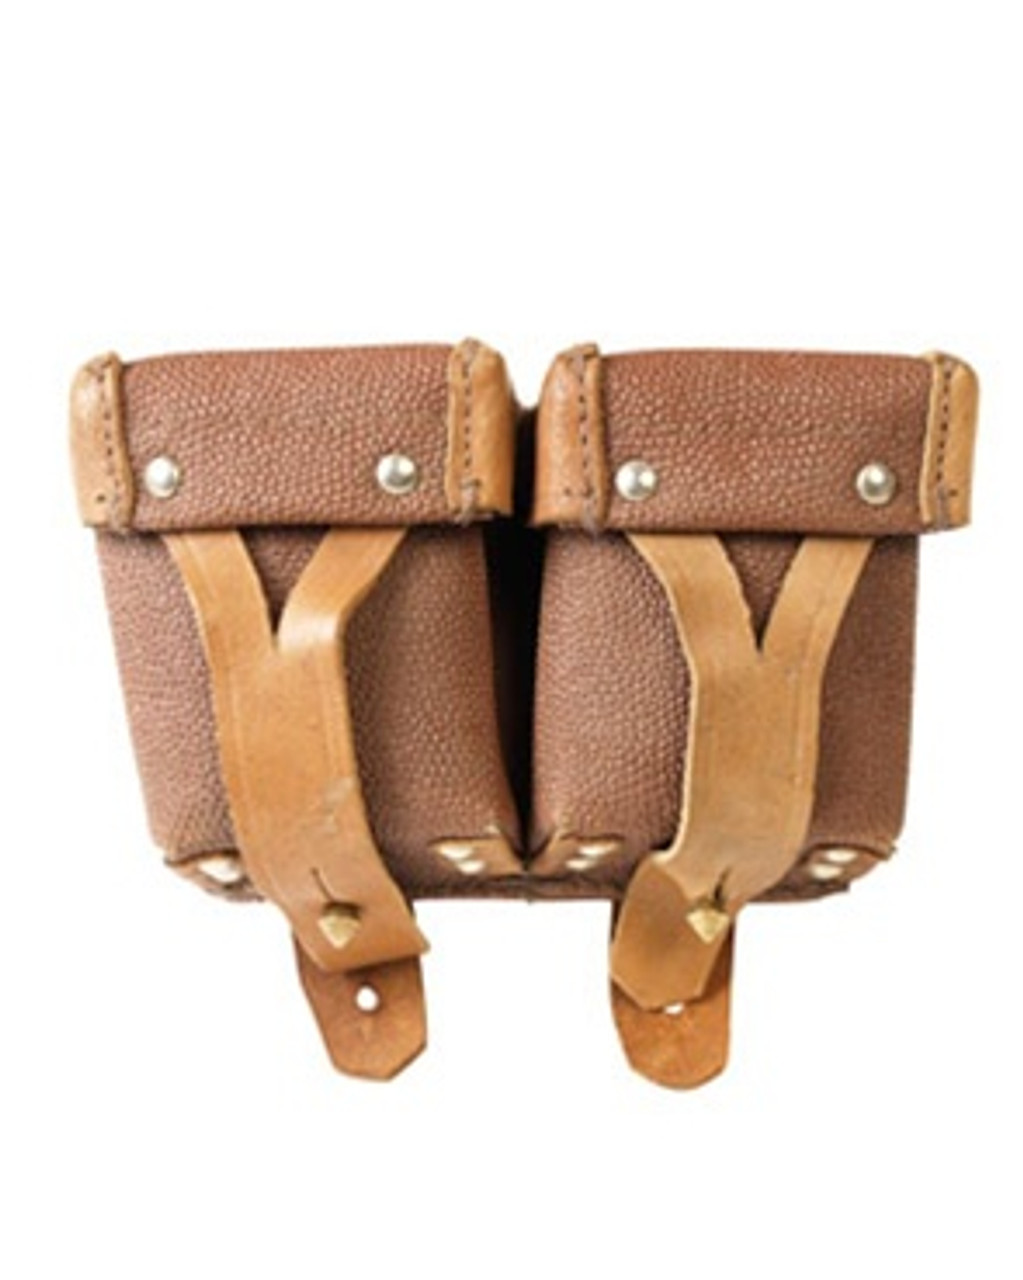 Russian Moisin Nagant Pouch from Hessen Antique